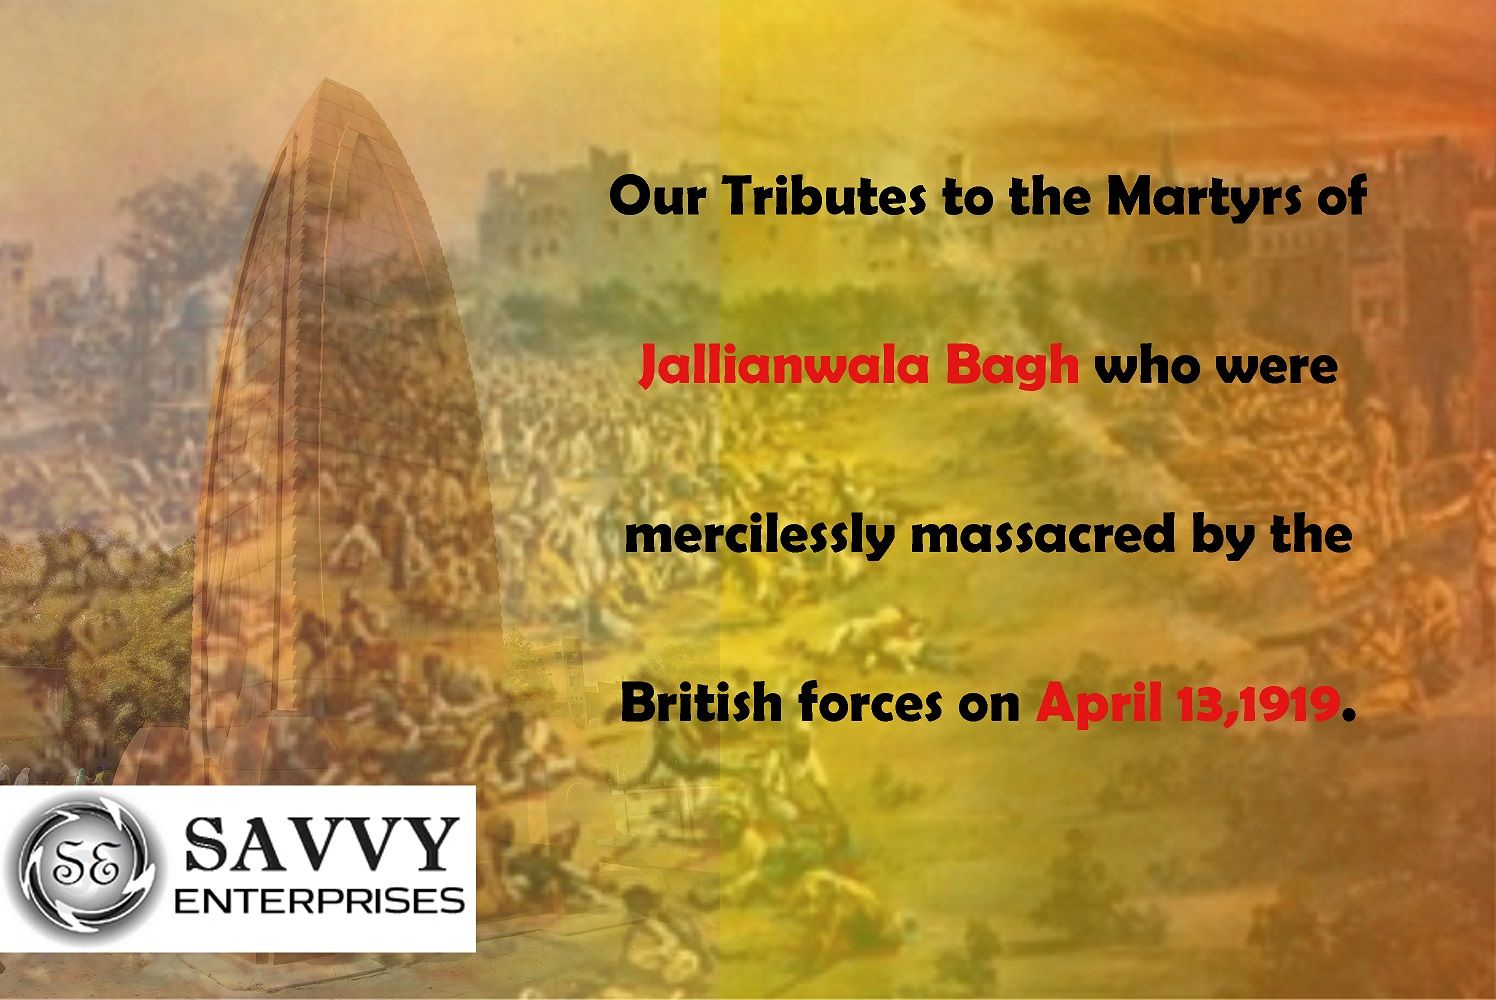 Our Tributes to the Martyrs of #JallianwalaBagh who were mercilessly massacred by the British forces on April 13,1919.